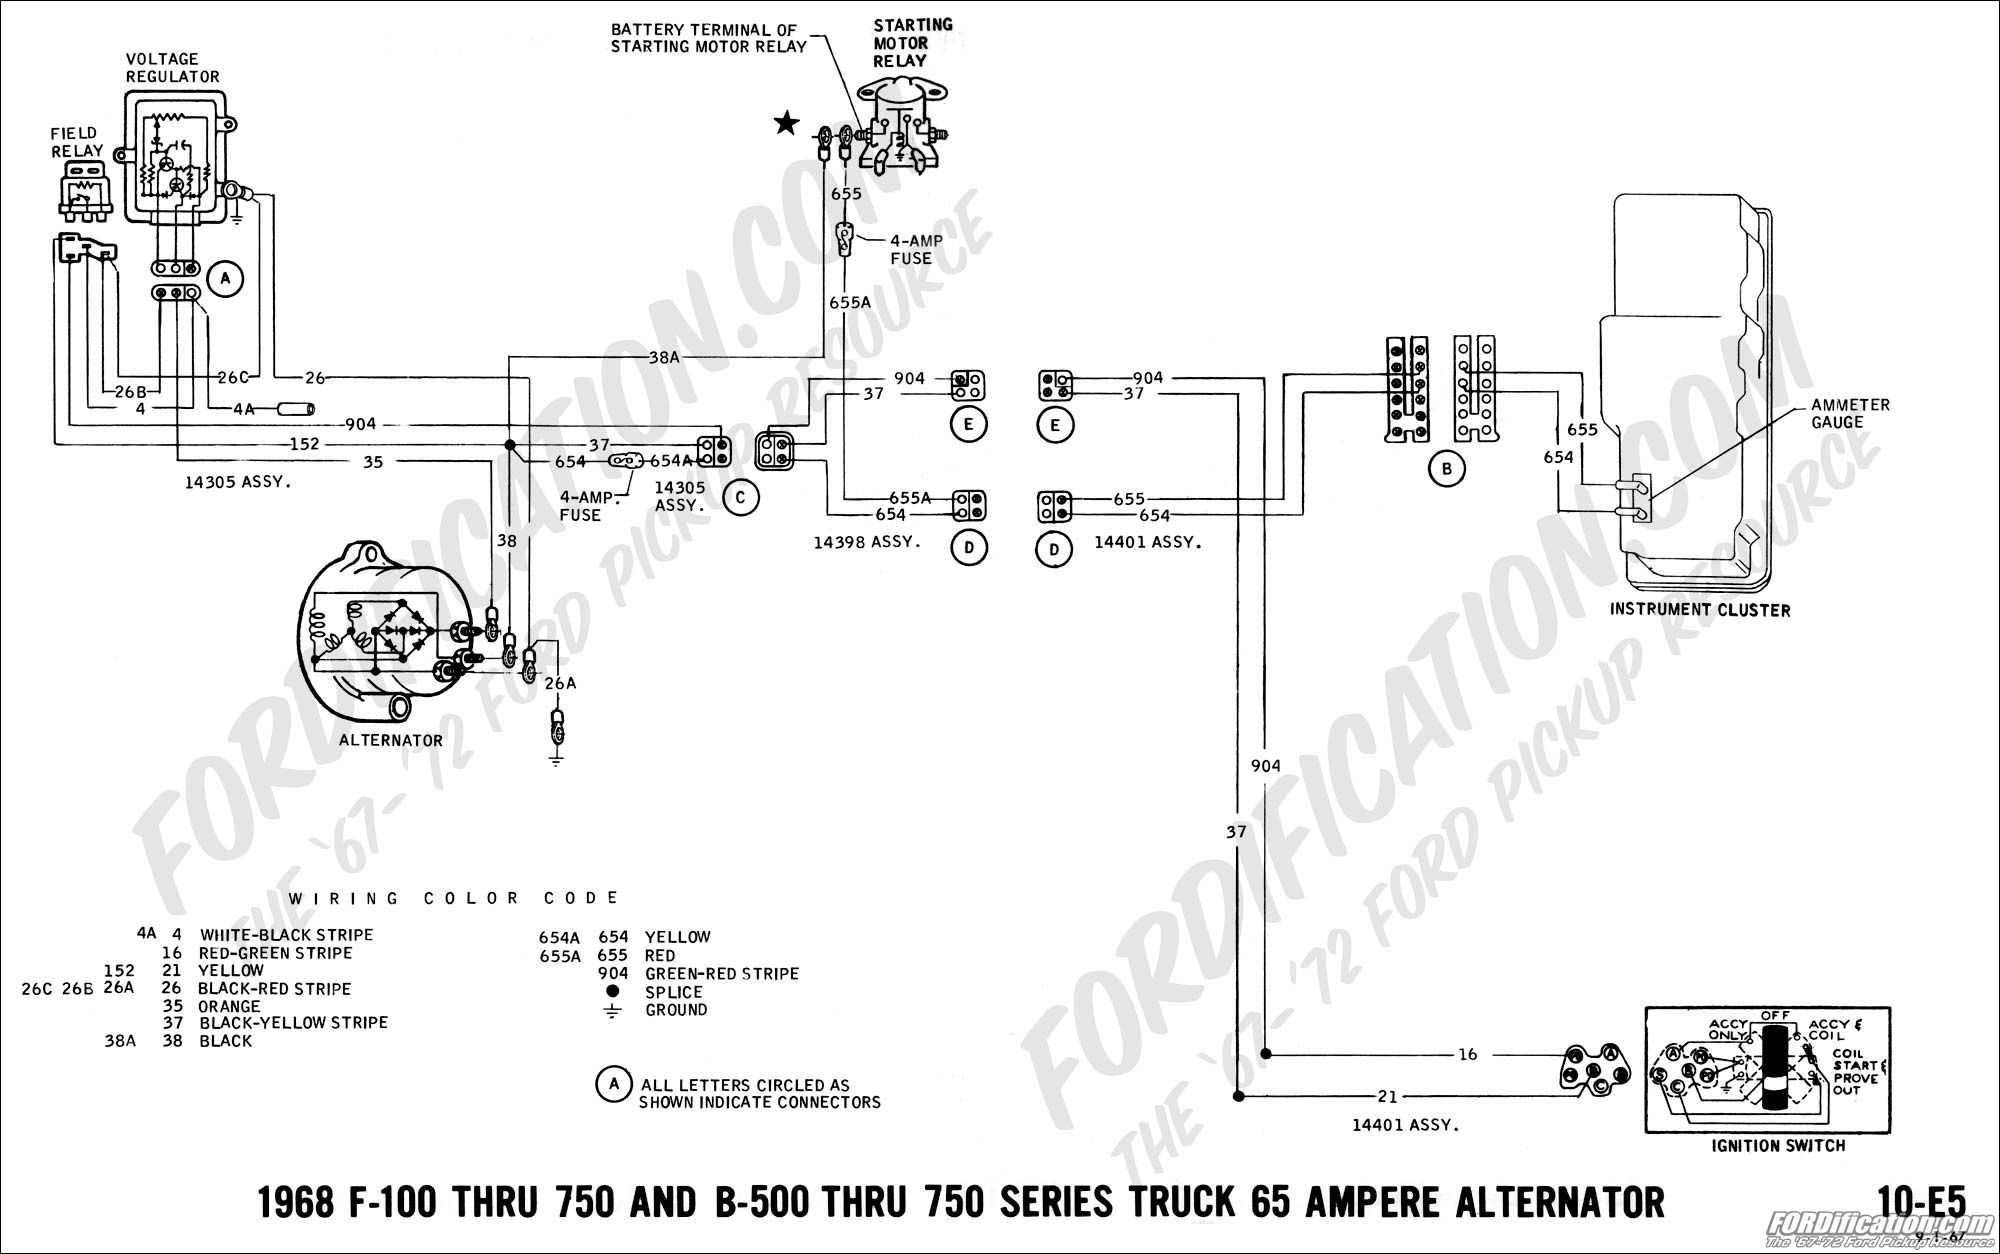 2g alt wire diagram wiring diagram schematics simple alternator wiring diagram 1956 ford alternator wiring diagram [ 2000 x 1254 Pixel ]